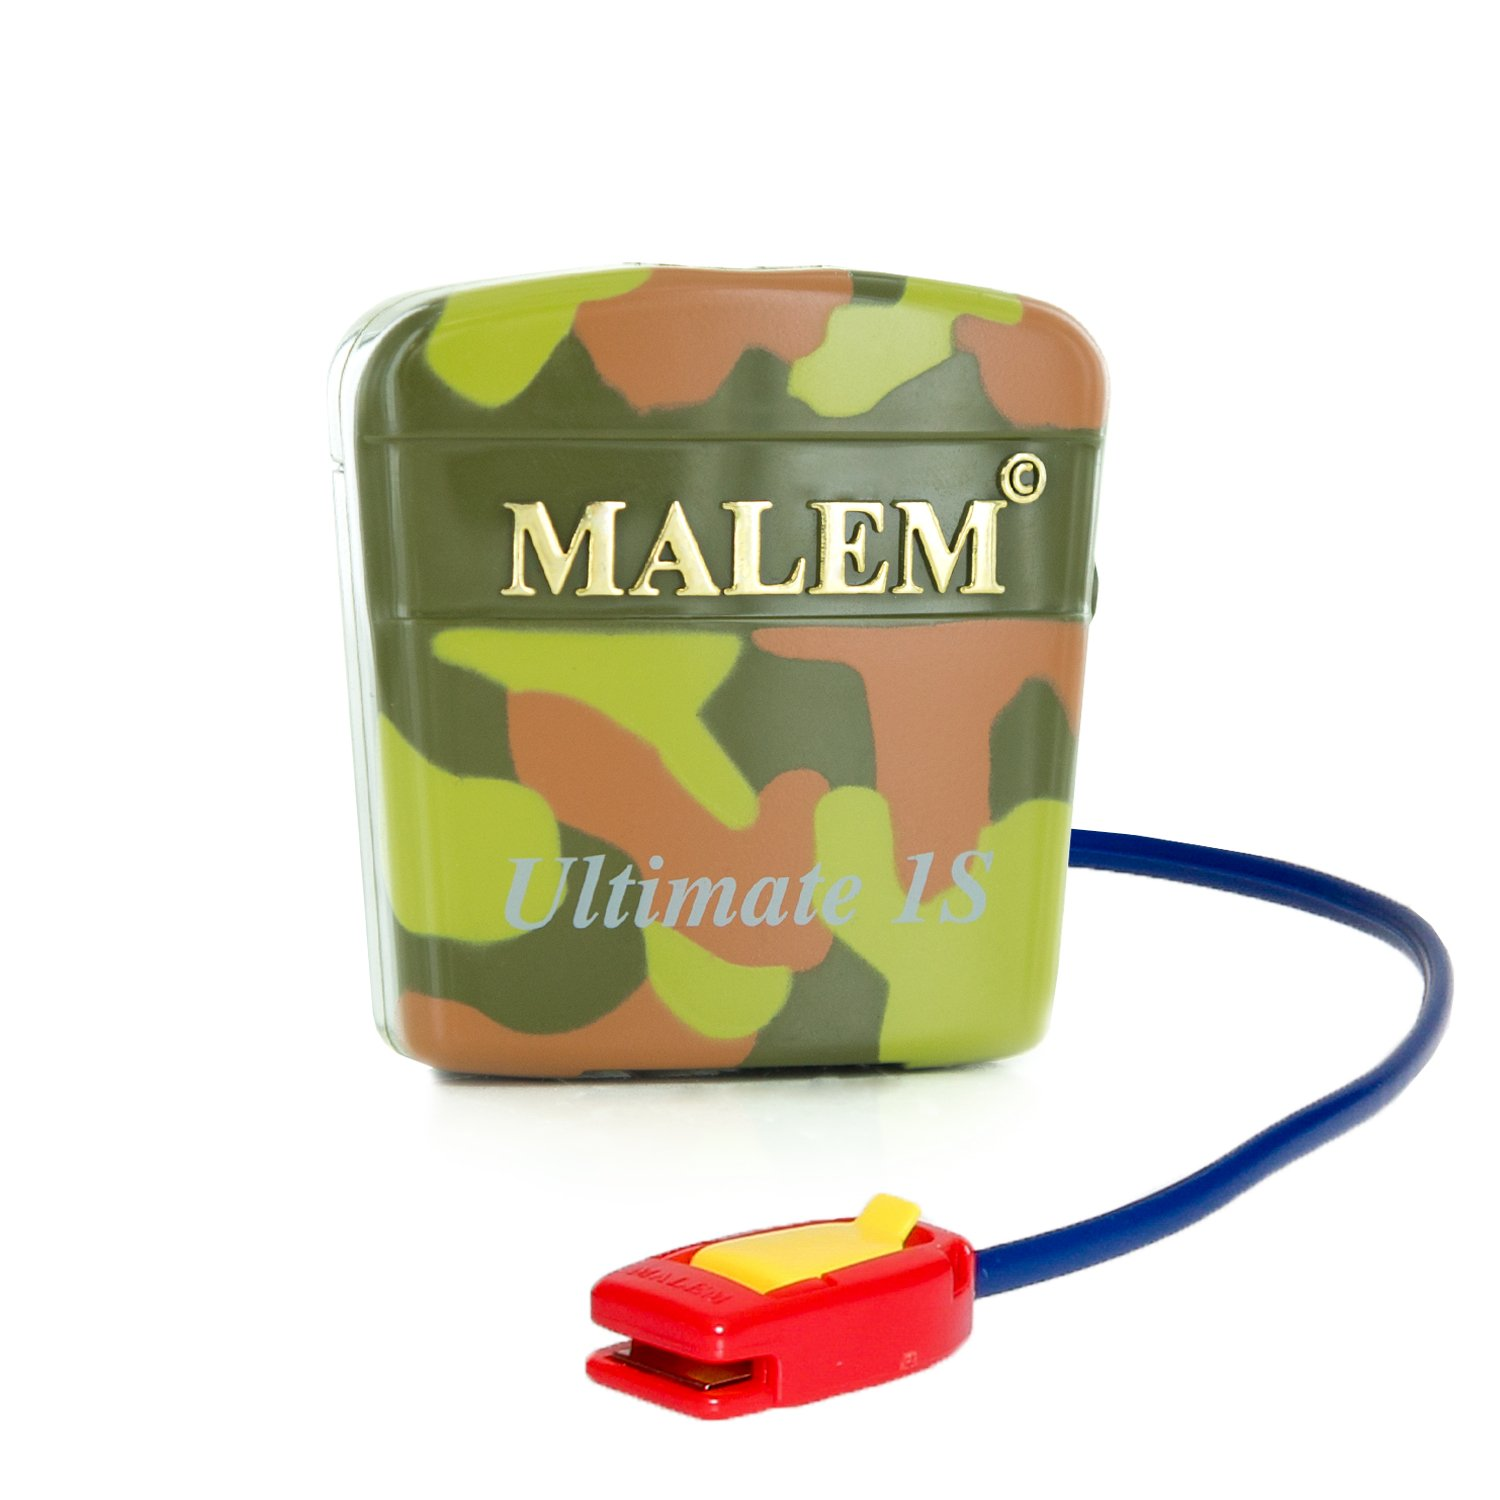 Malem Ultimate PRO Selectable Camouflage Bedwetting Alarm for Girls & Boys with Loud Sound and Strong Vibration to Stop Bed Wetting by Malem